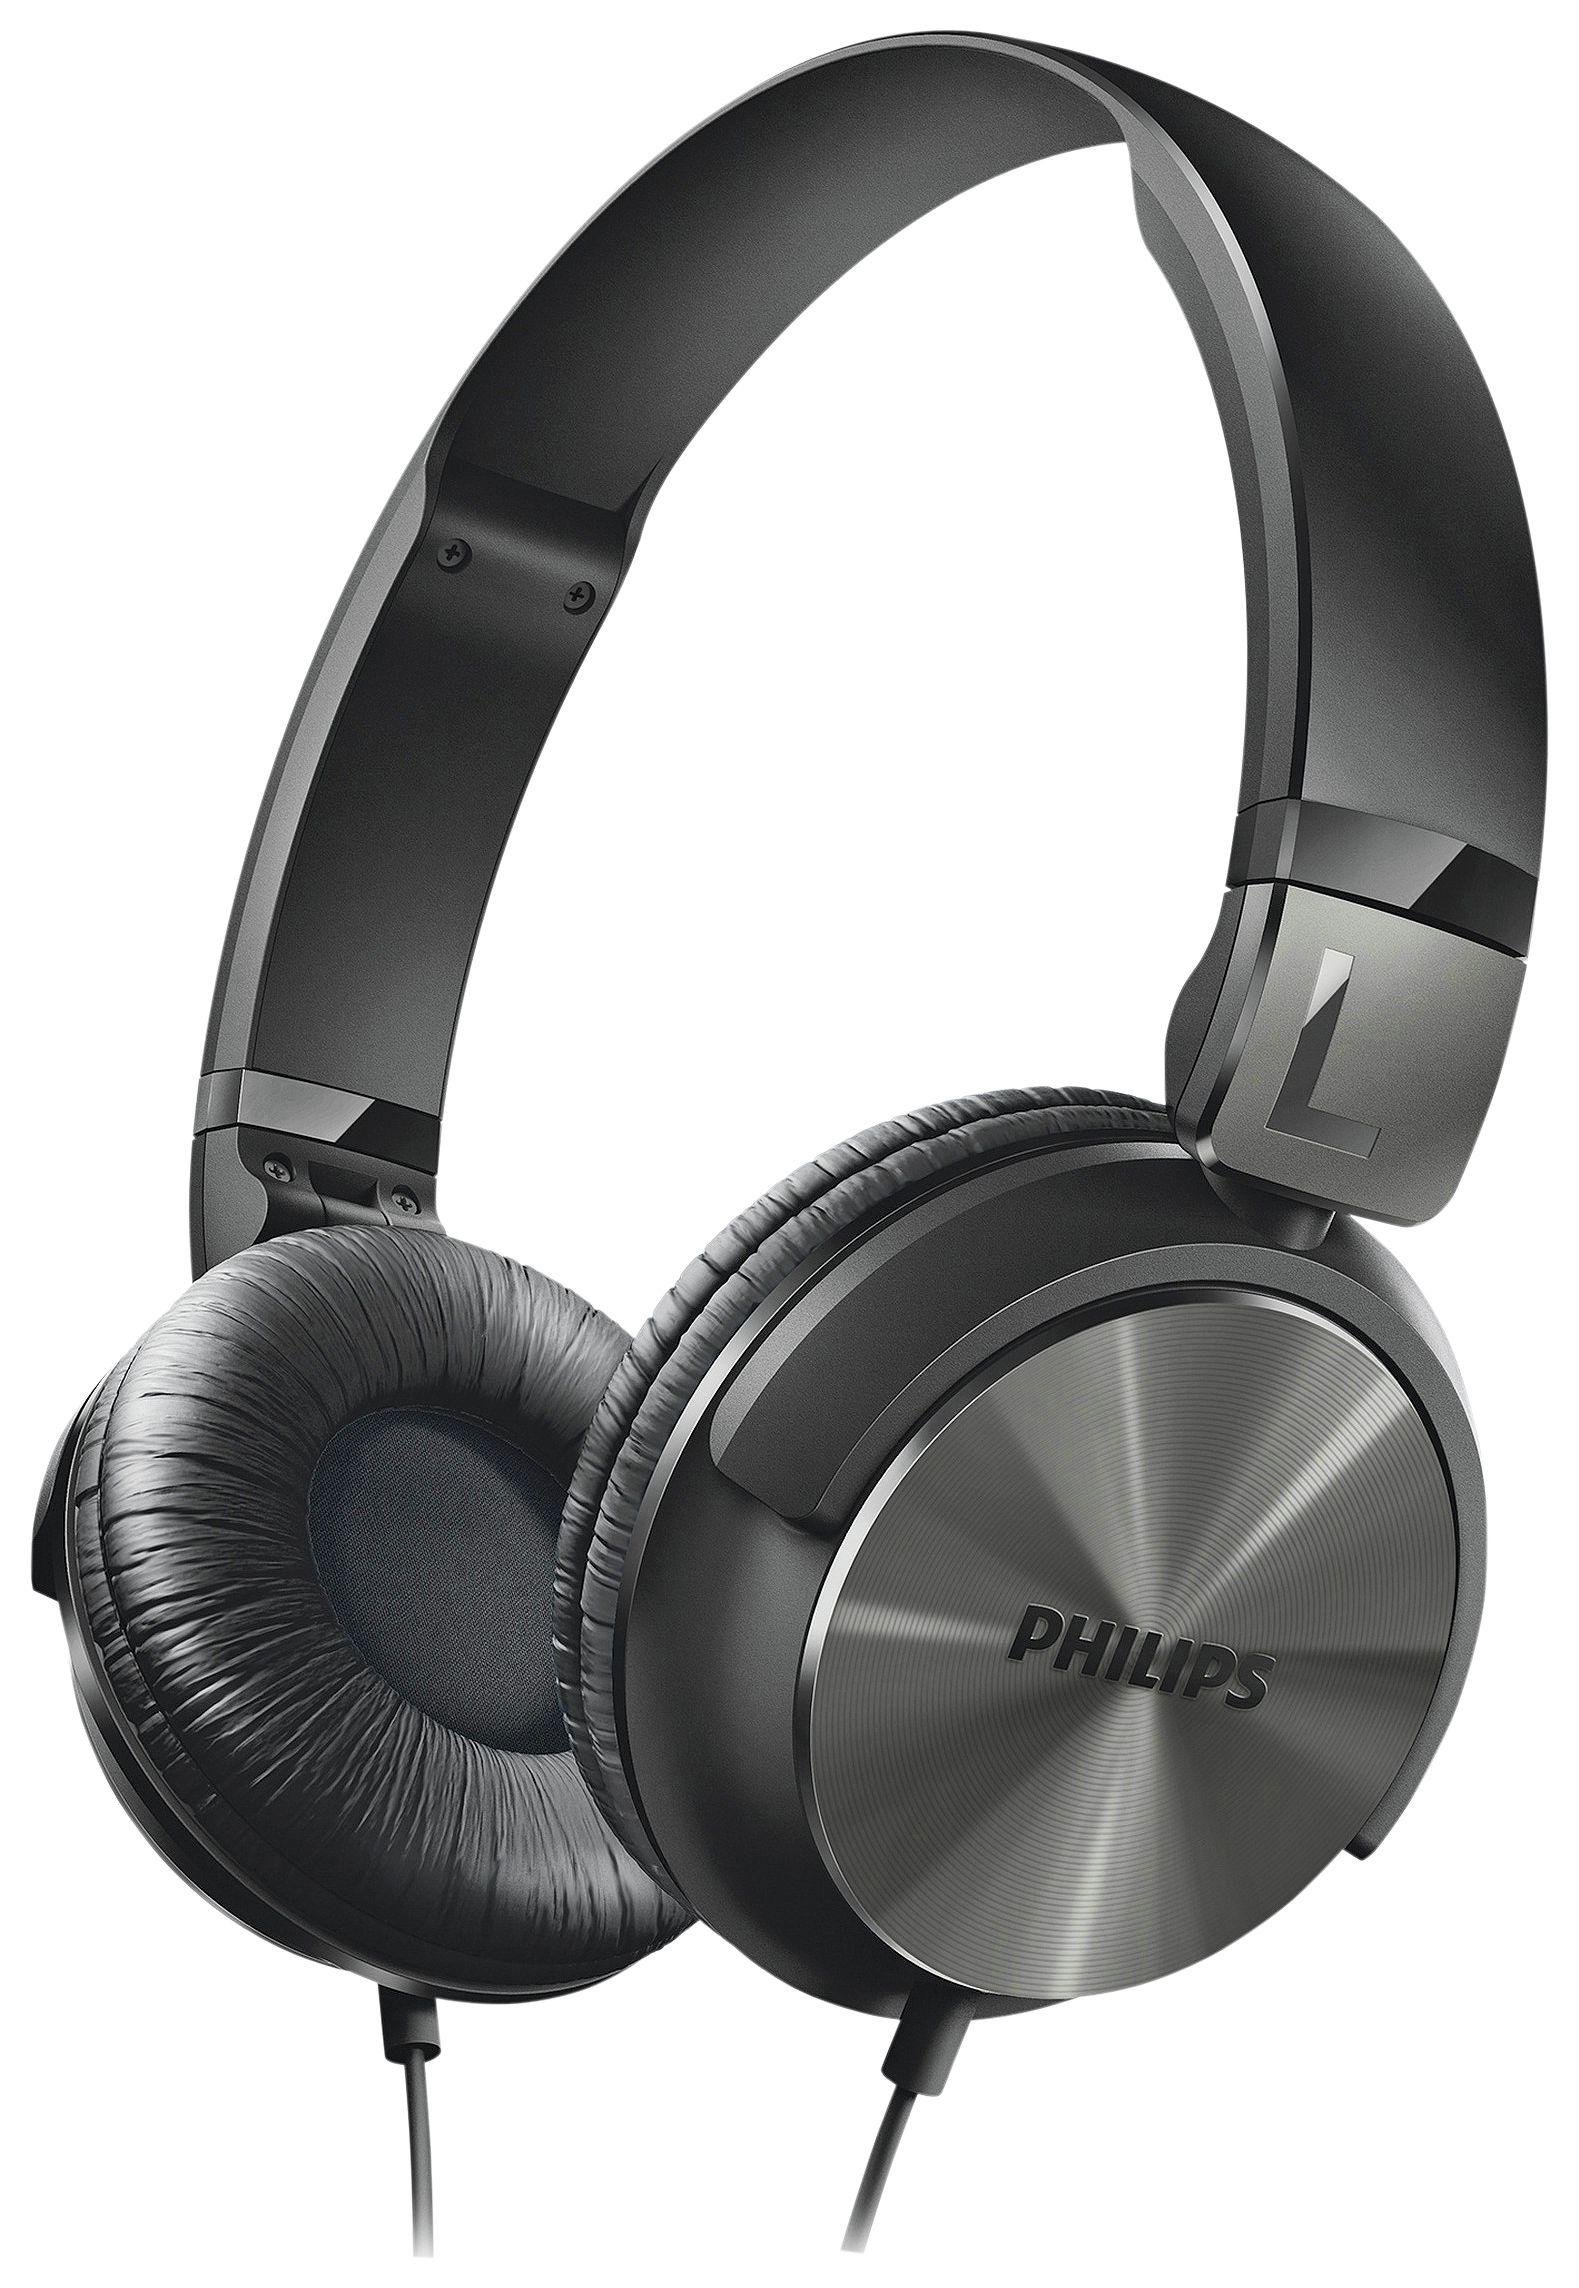 Philips Philips - SHL3160 DJ Style On-Ear Headphones - Black